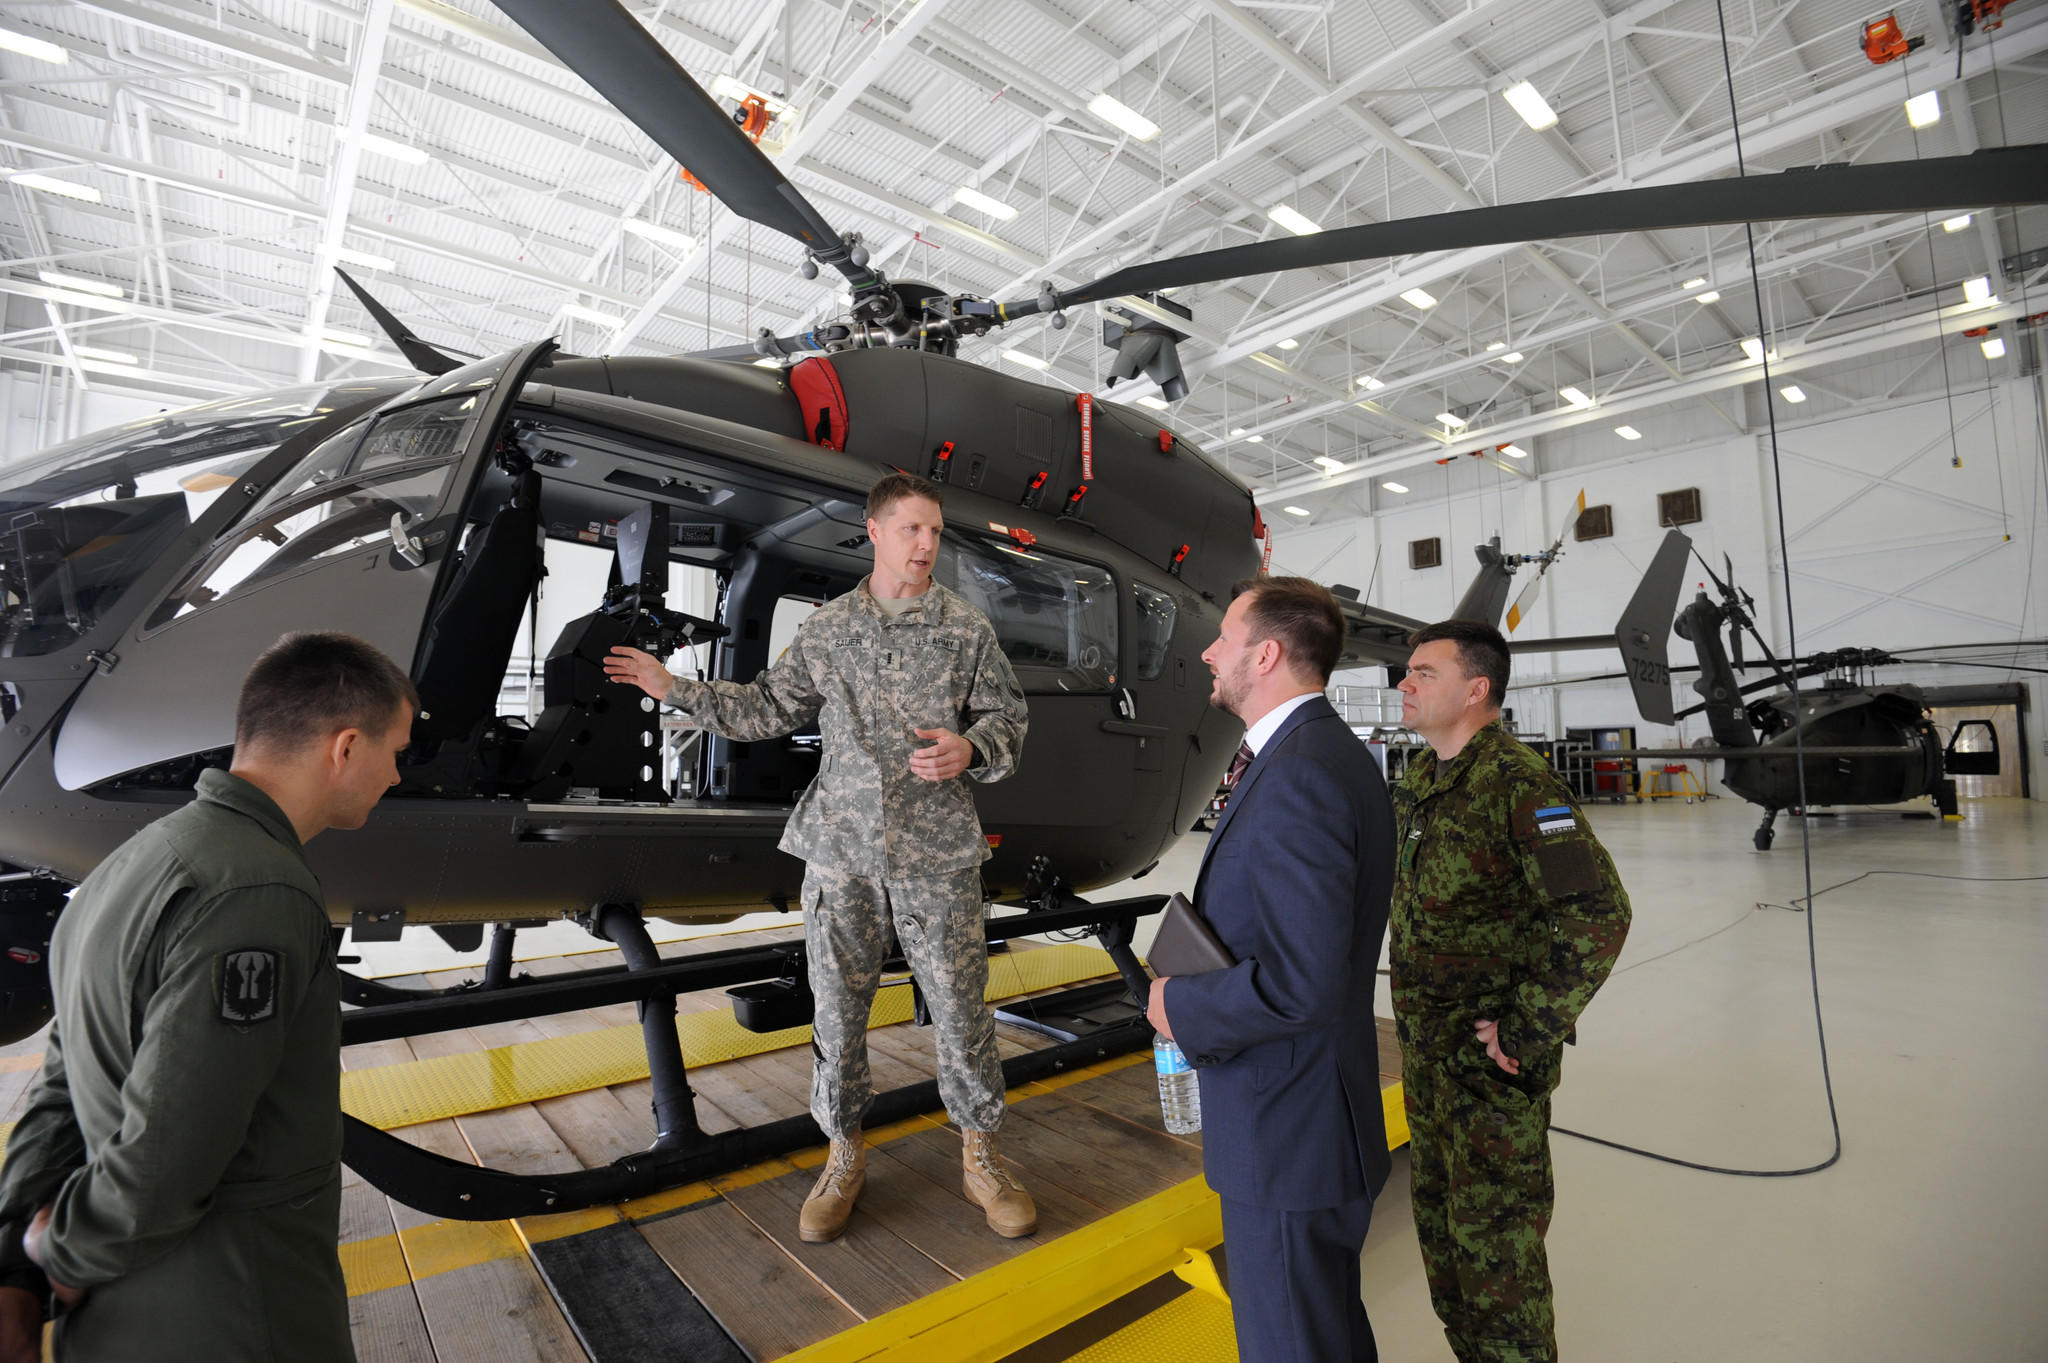 Scott Sauer (left), of the Maryland National Guard, talks about the LUH-72 Lakota helicopter as Tanel Sepp, deputy chief of mission, and Col. Aivar Salekesin, Estonian defense attache listen.